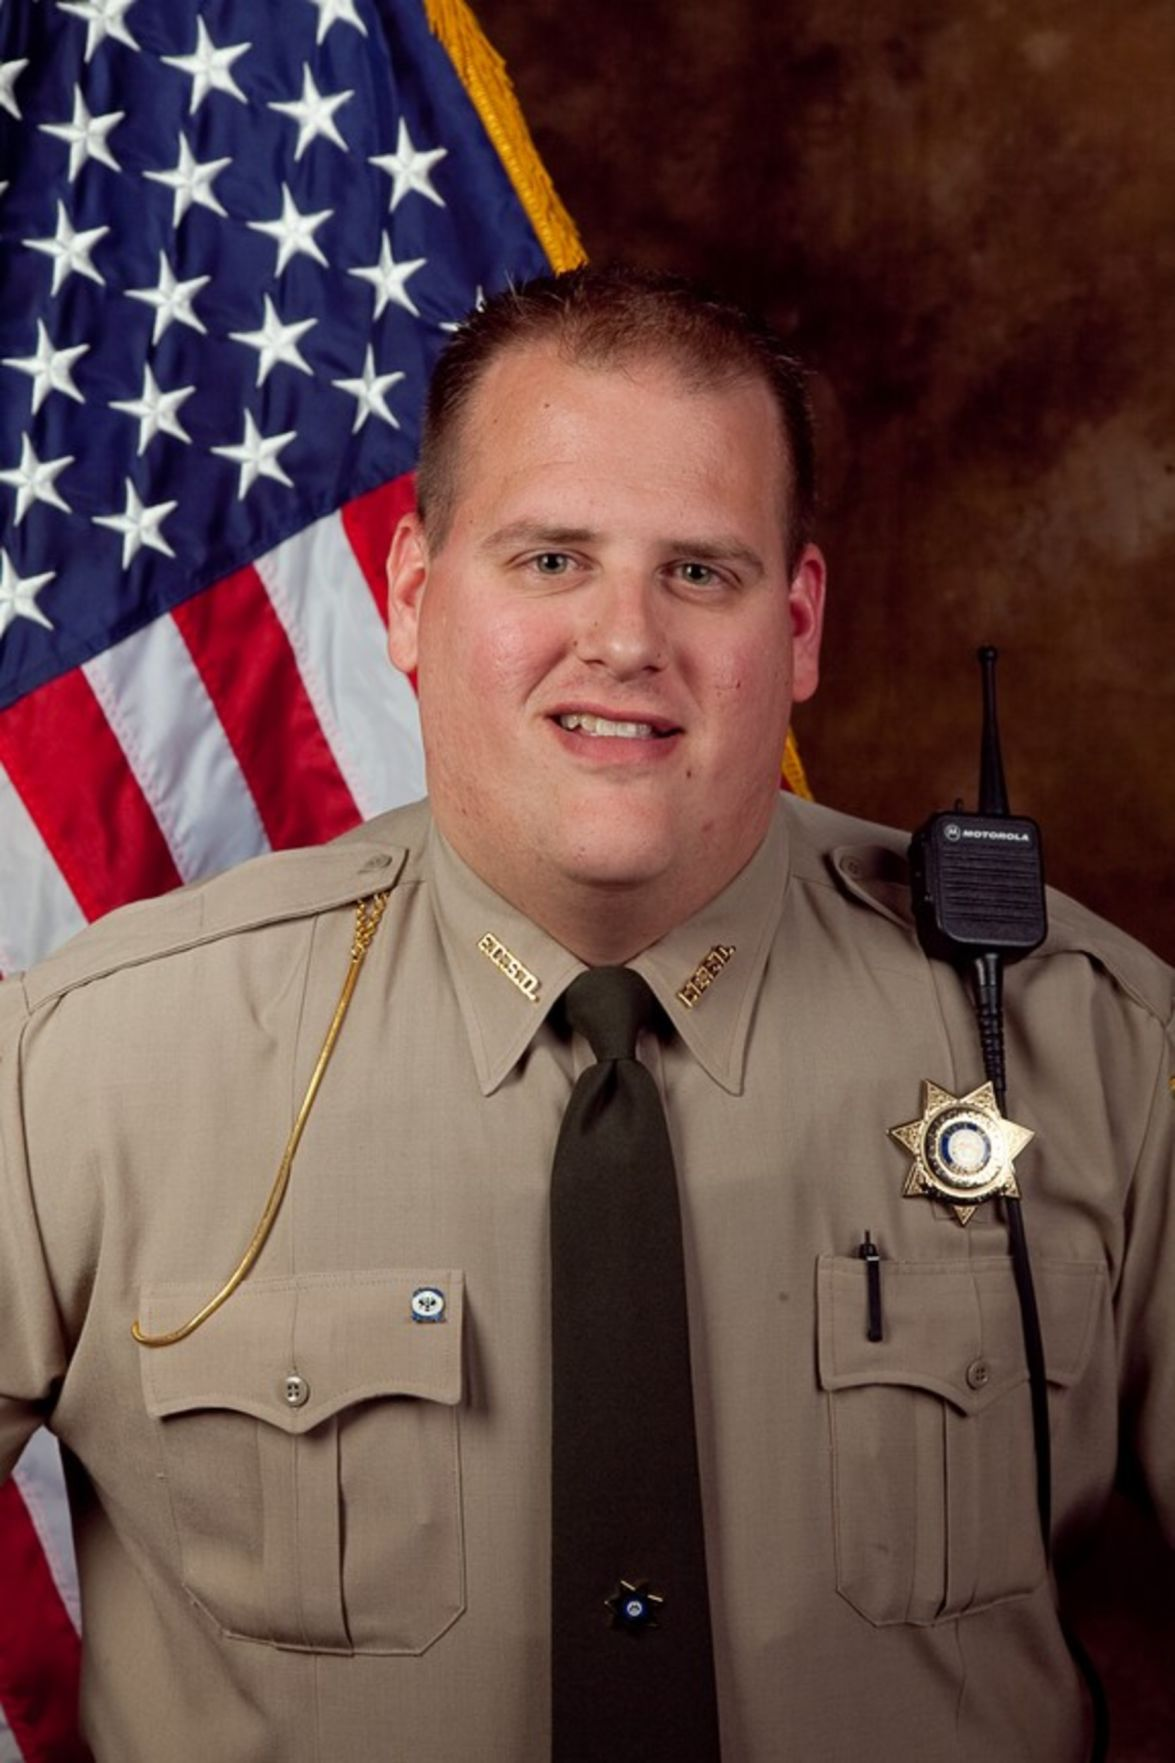 Four deputies recognized for outstanding service | Public Safety